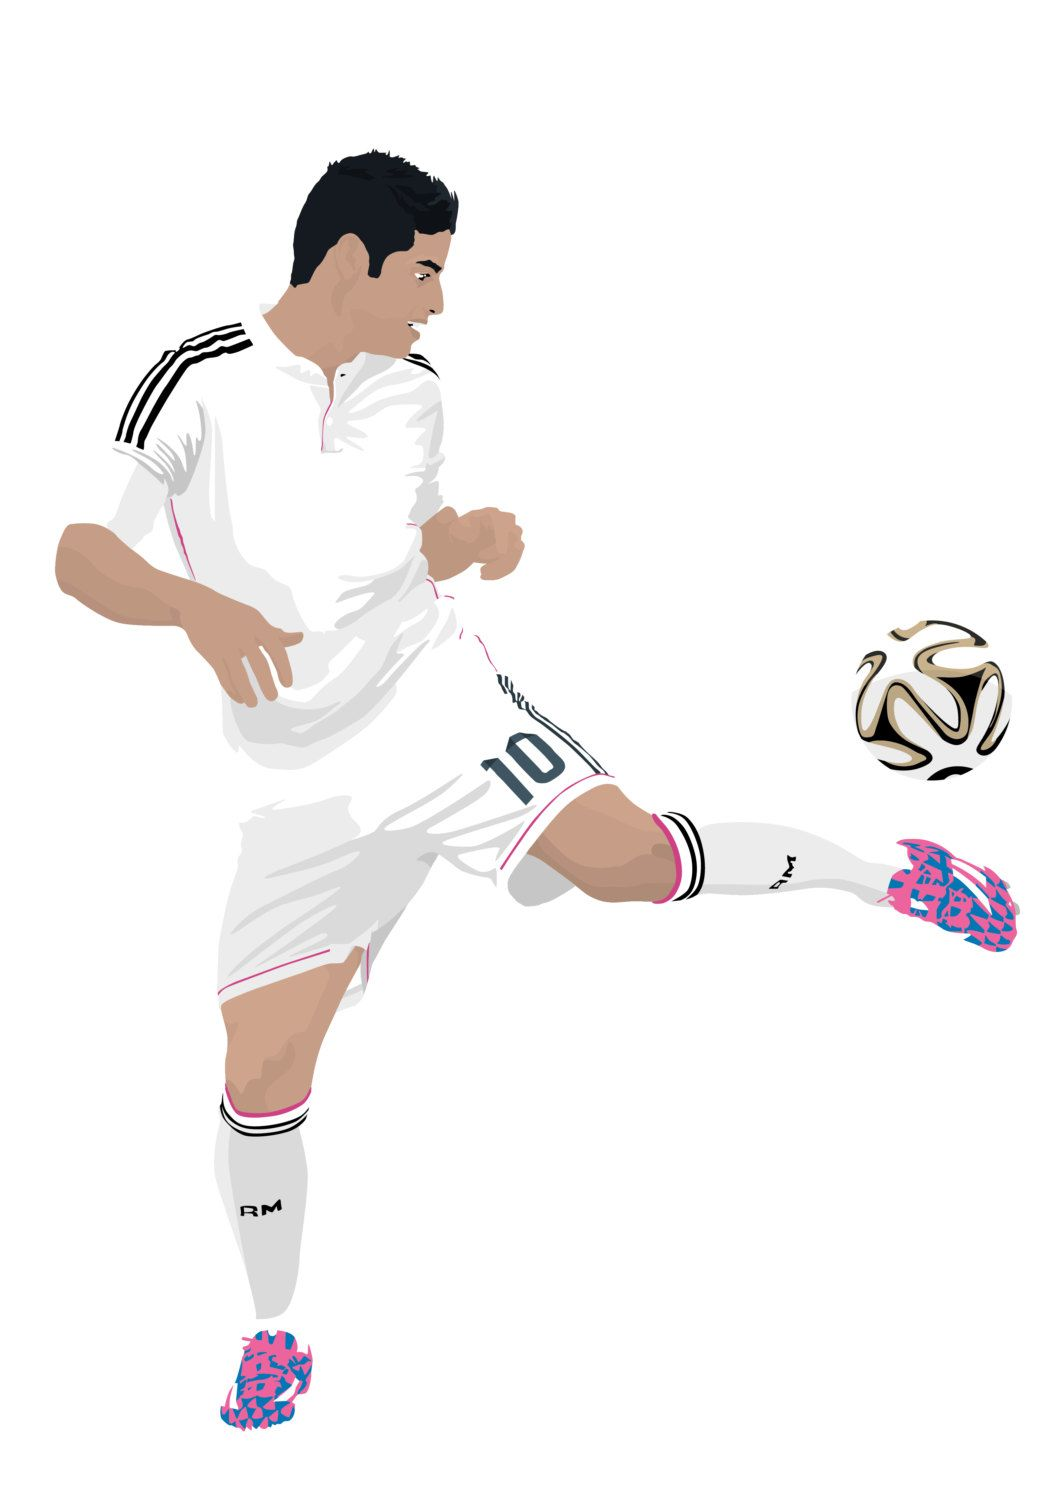 James Rodriguez A3 Cartel 297mmx420mm Real Madrid Por Entiredesign